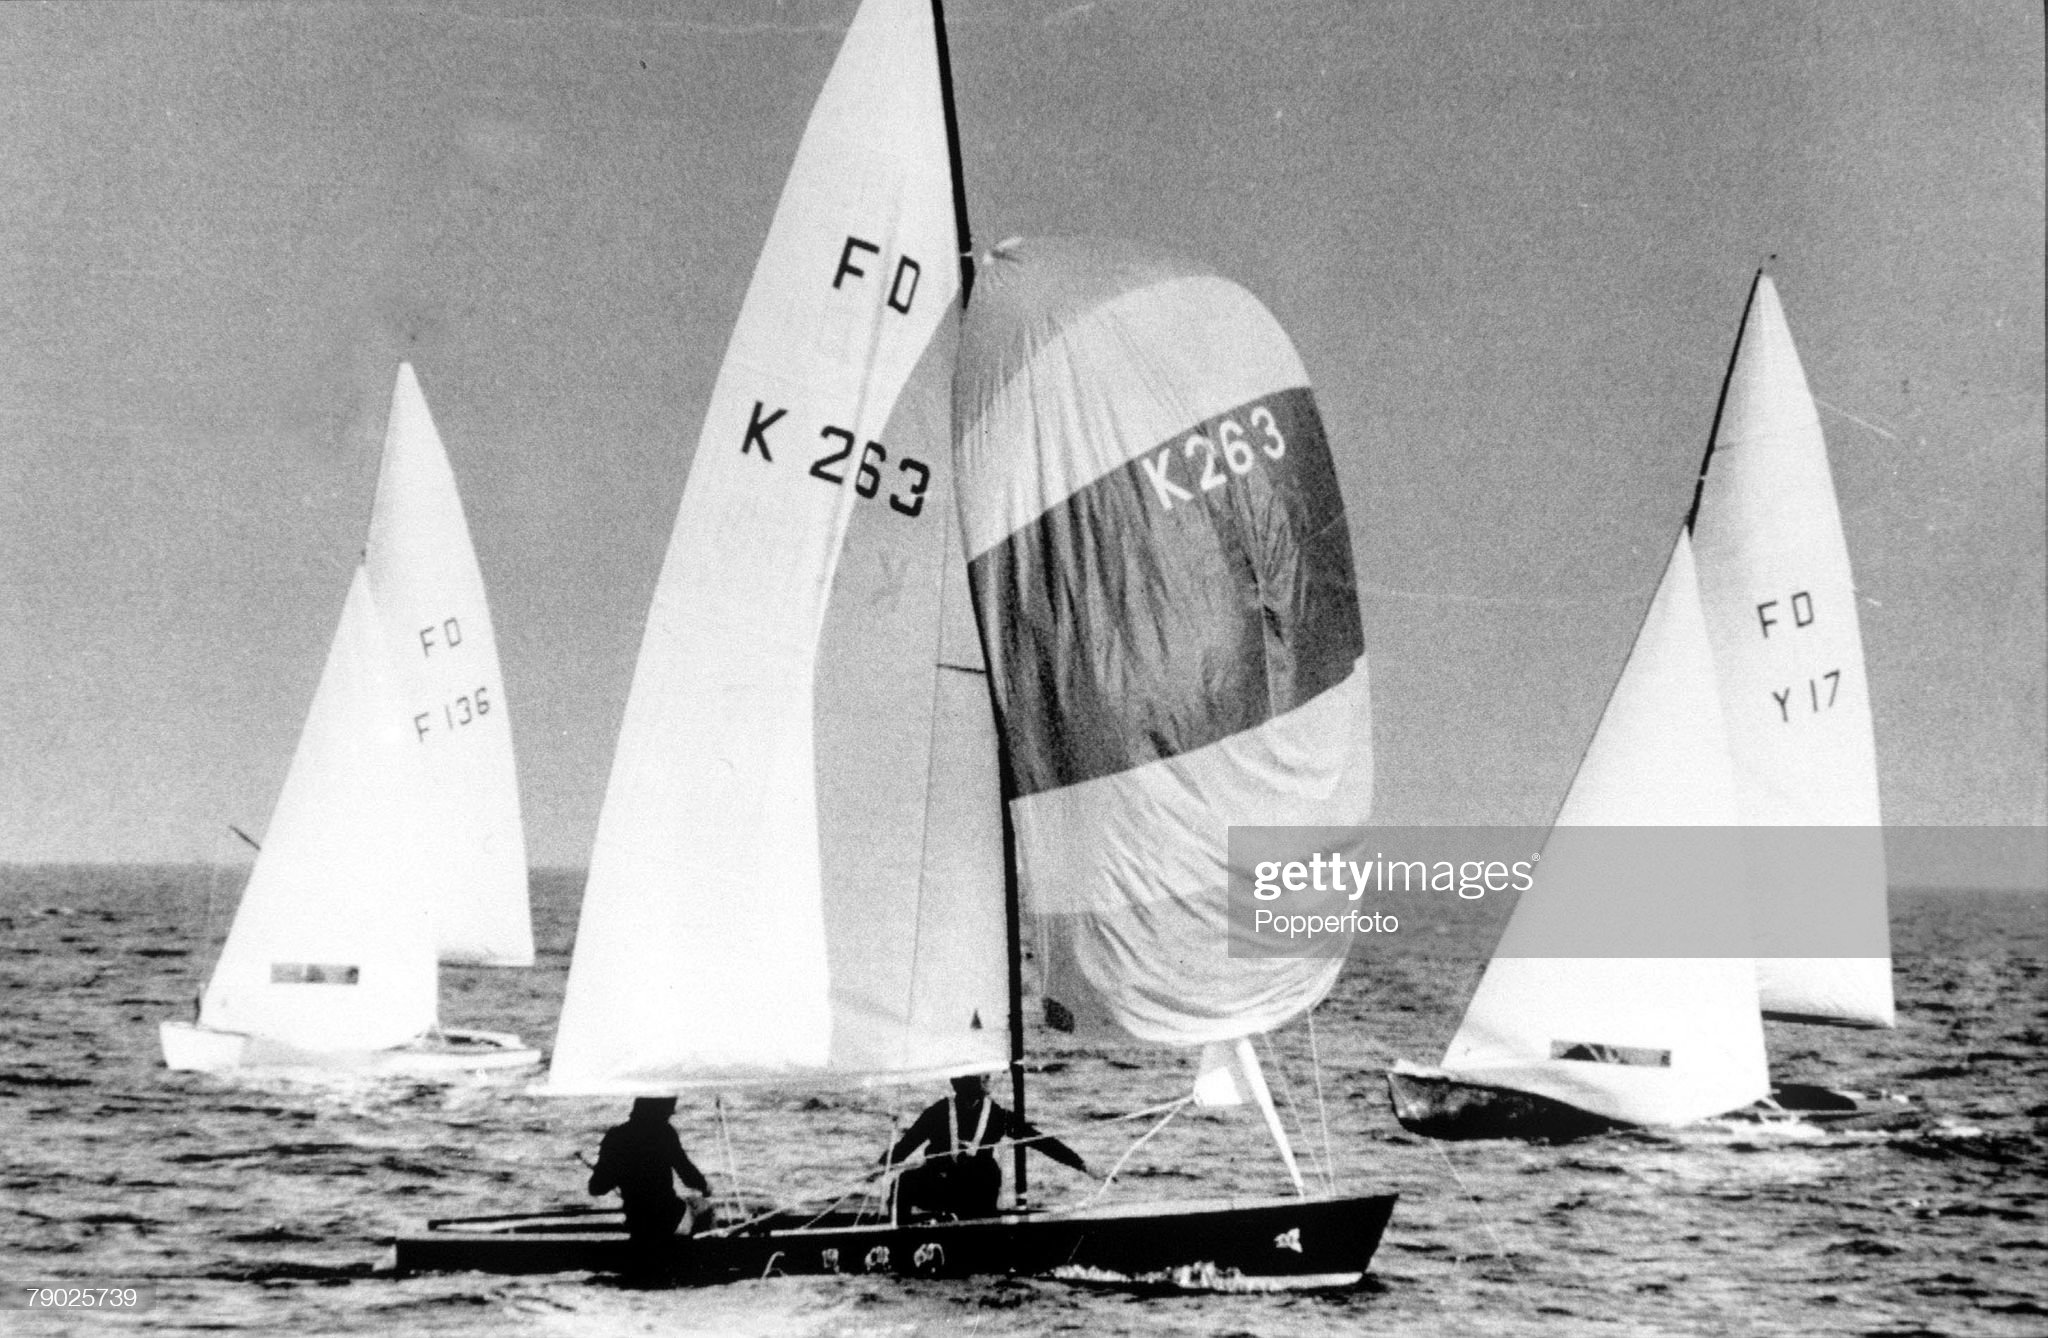 1972 Olympic Games. Munich, West Germany. Yachting. Flying Dutchman Class. Great Britain's Rodney Patterson and Chris Davies (K263) in action to win the gold medal. : News Photo